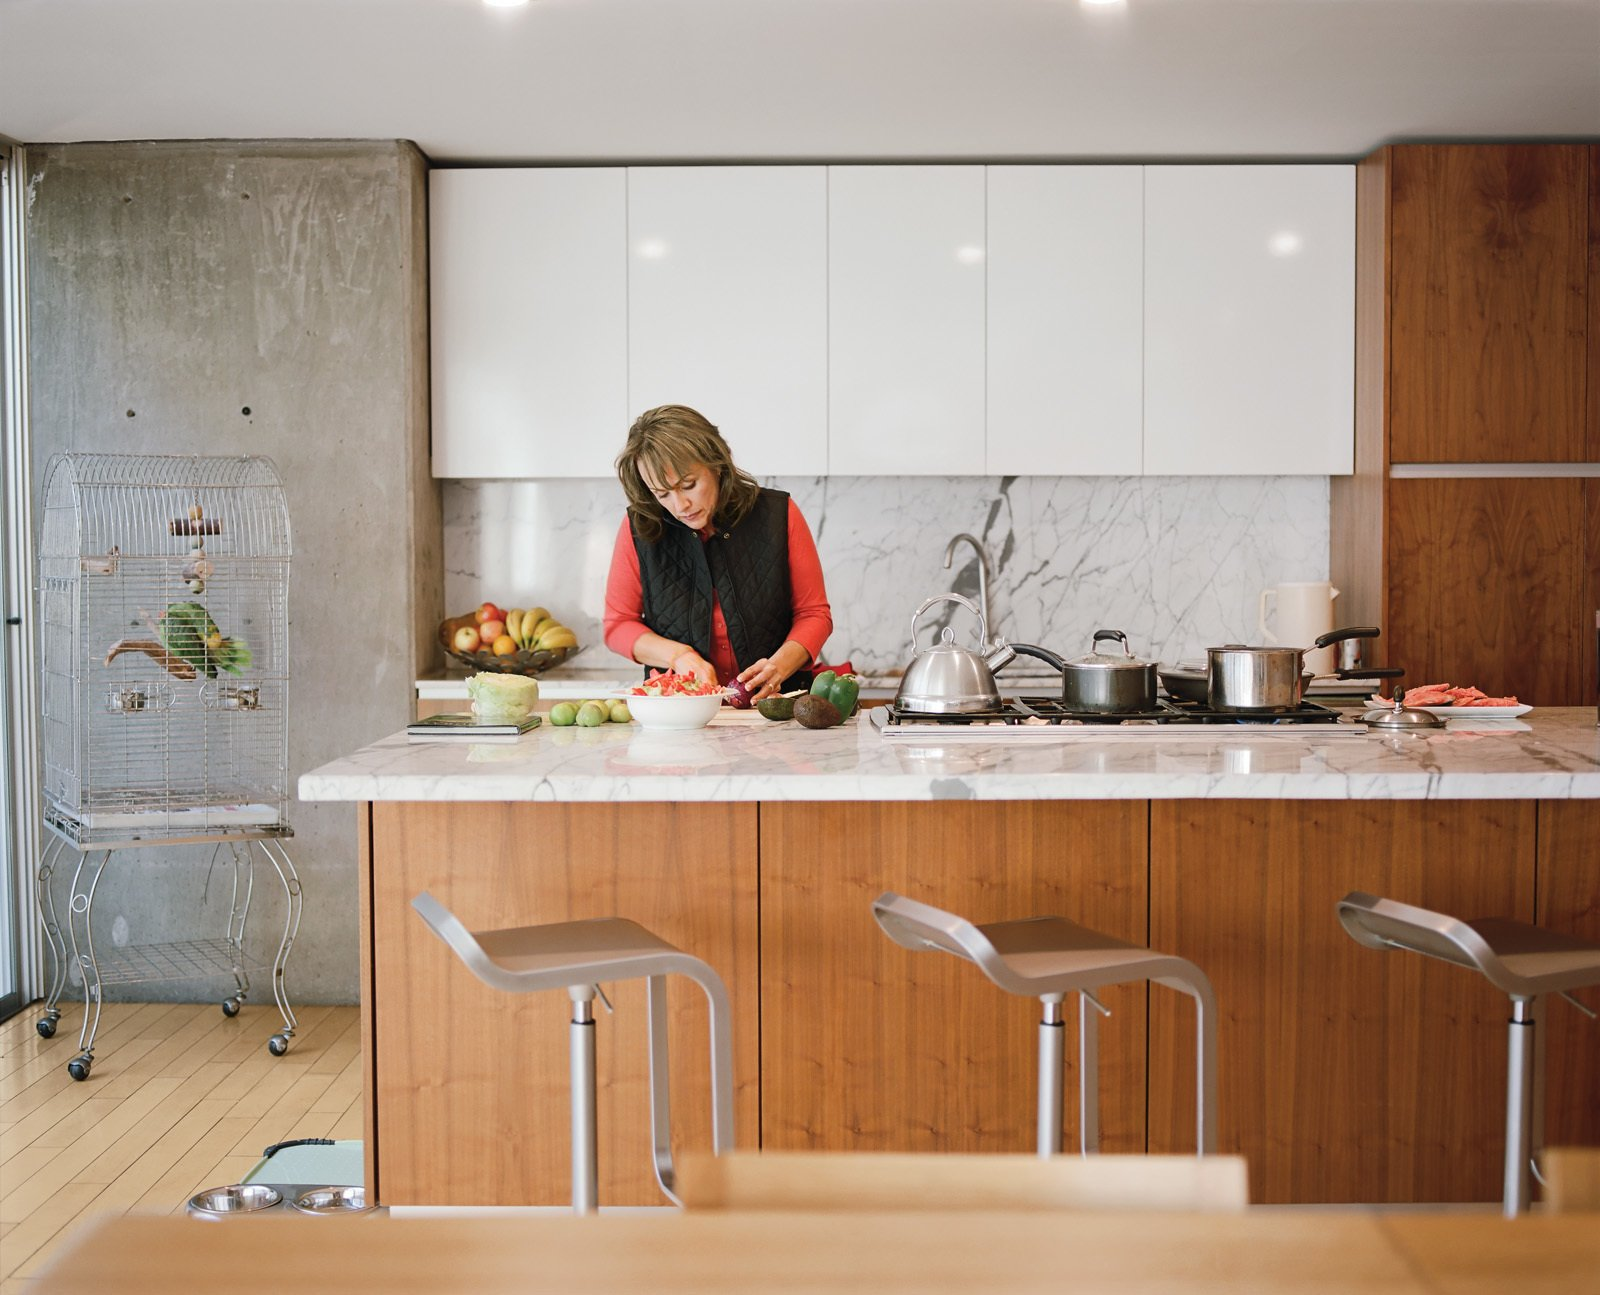 Angelica Becerril prepares food at the kitchen island; the Carrara marble countertop is one of the few luxury materials used in the house. Tagged: Kitchen, Marble Counter, and Wood Cabinet.  Photo 1 of 21 in Mad About Marble: 20 Kitchens and Bathrooms from Modern in Tijuana